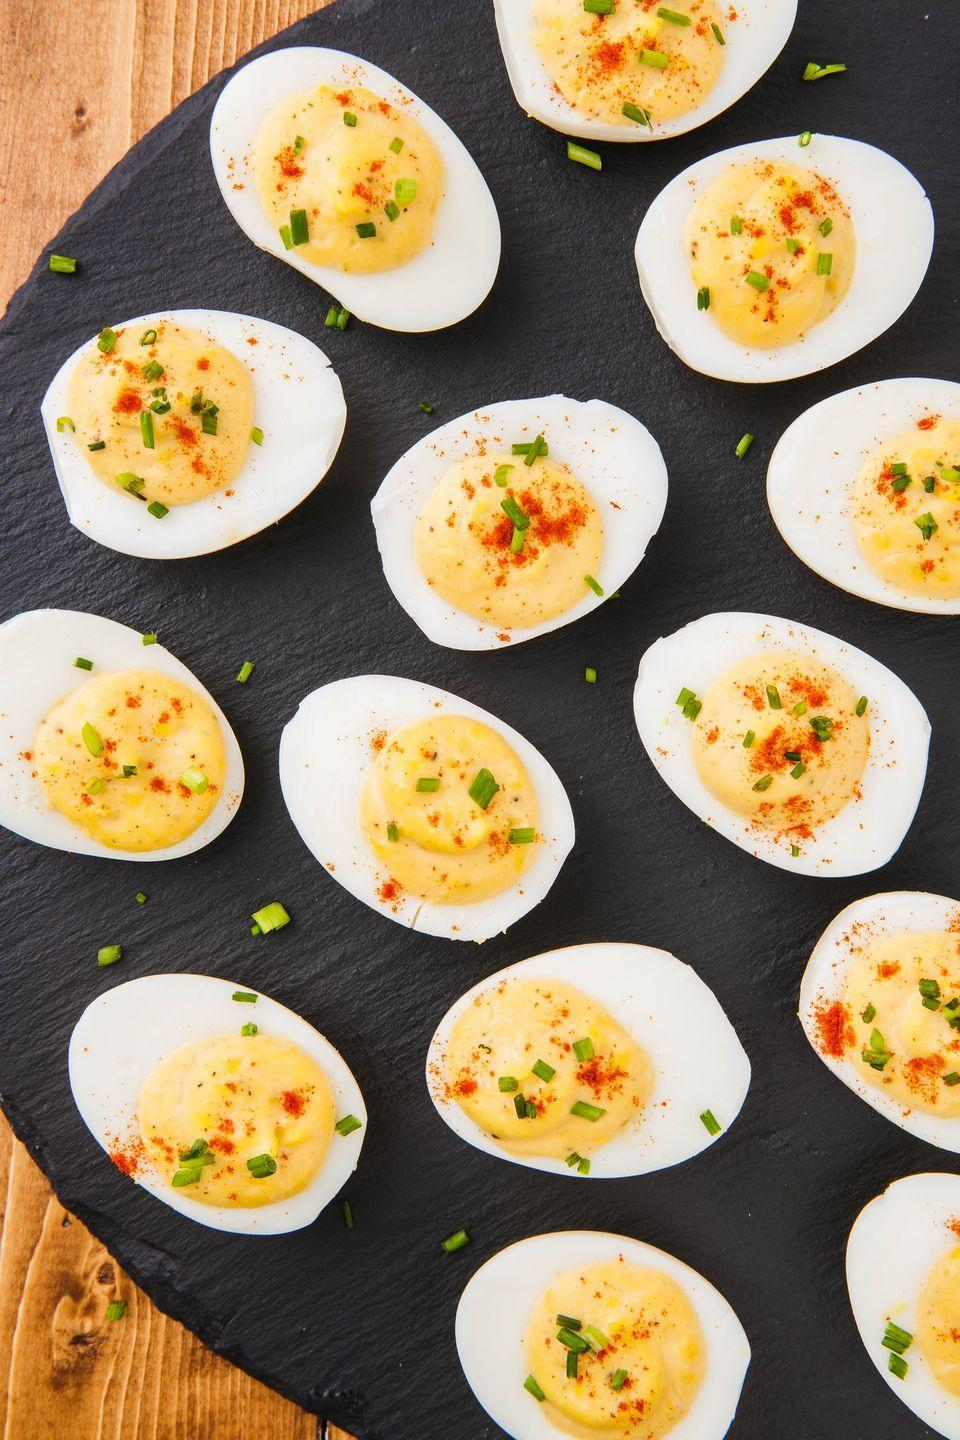 """<p>If you're team deviled eggs, this is the only recipe you'll ever need.</p><p>Get the recipe from <a href=""""https://www.delish.com/cooking/recipe-ideas/a51851/classic-deviled-eggs-recipe/"""" rel=""""nofollow noopener"""" target=""""_blank"""" data-ylk=""""slk:Delish"""" class=""""link rapid-noclick-resp"""">Delish</a>.</p>"""